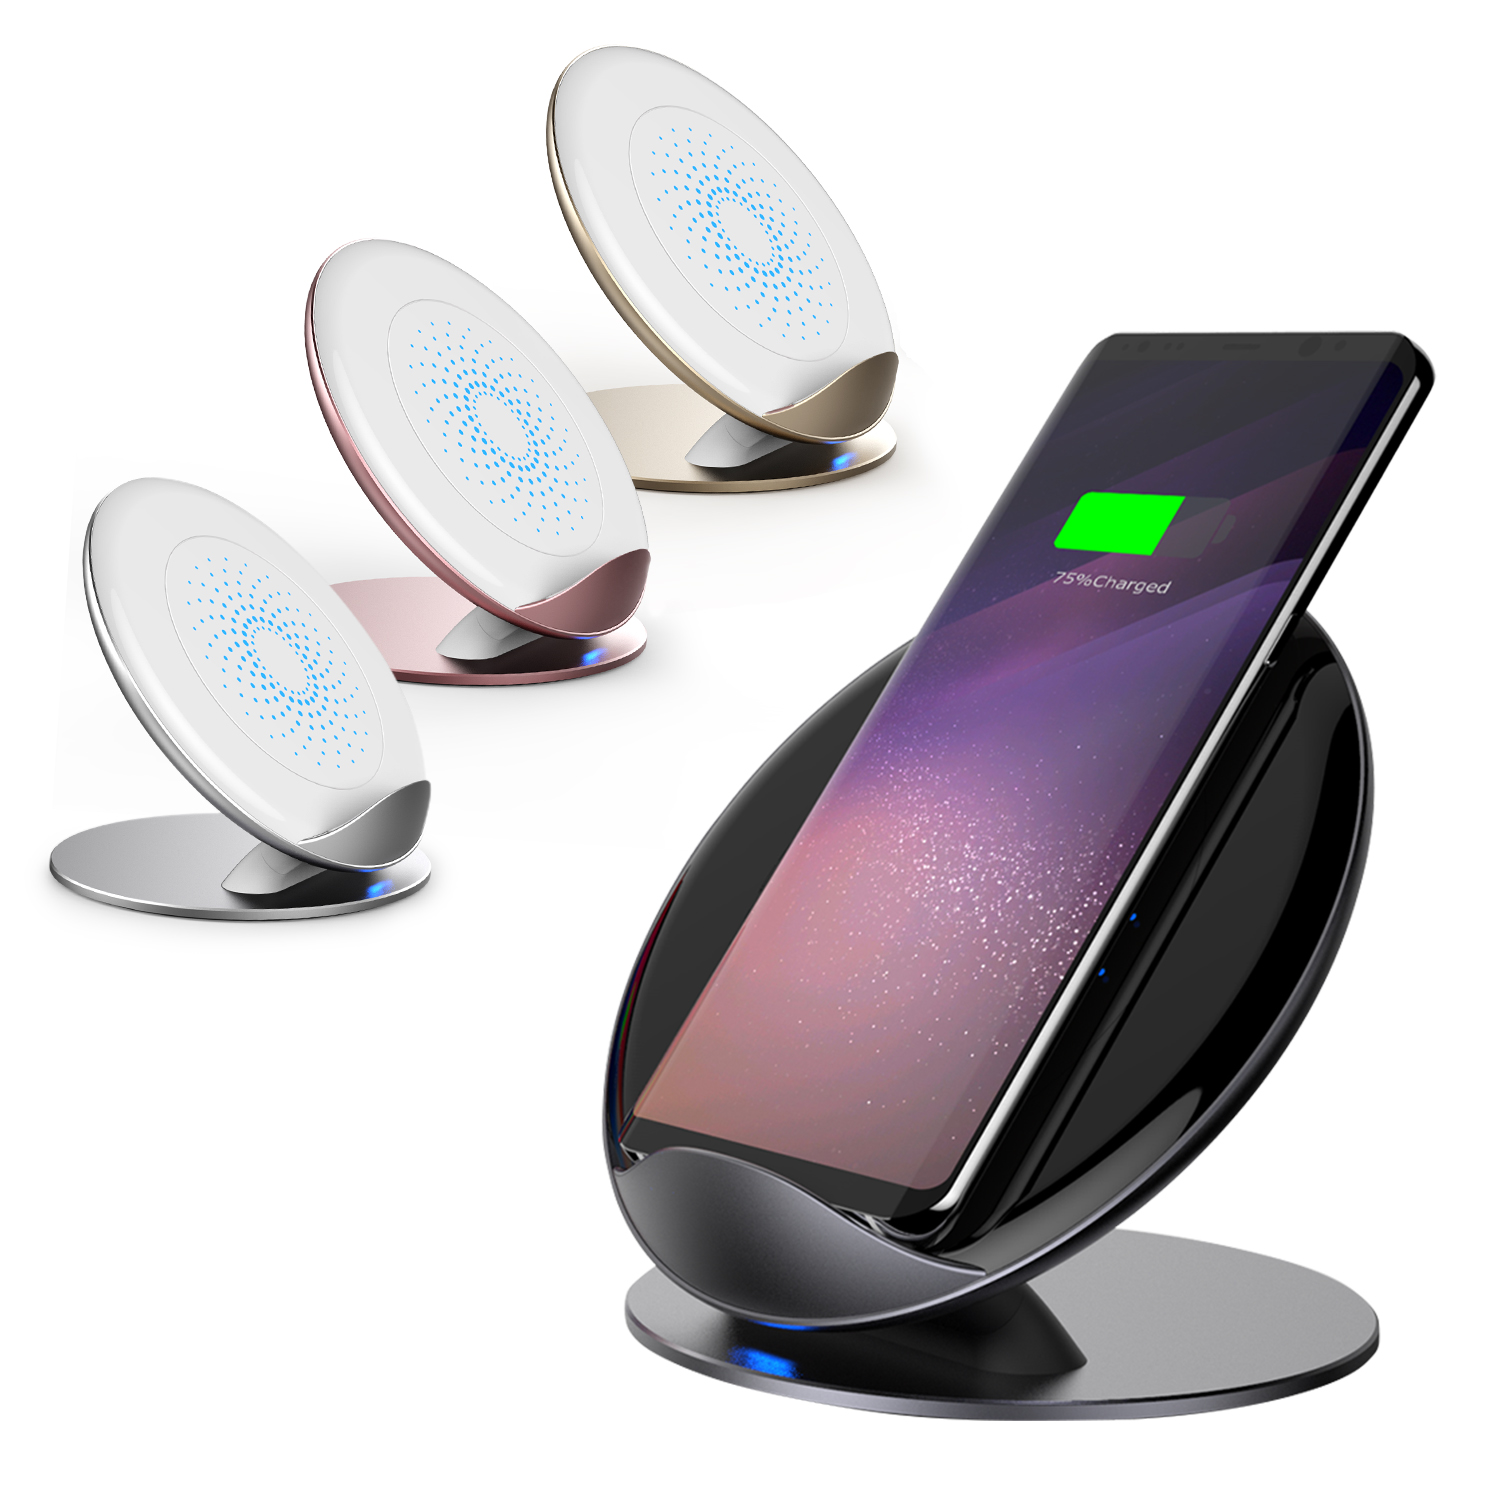 samsung qi induktive ladestation wireless charger f r galaxy s9 iphone 8 x plus ebay. Black Bedroom Furniture Sets. Home Design Ideas